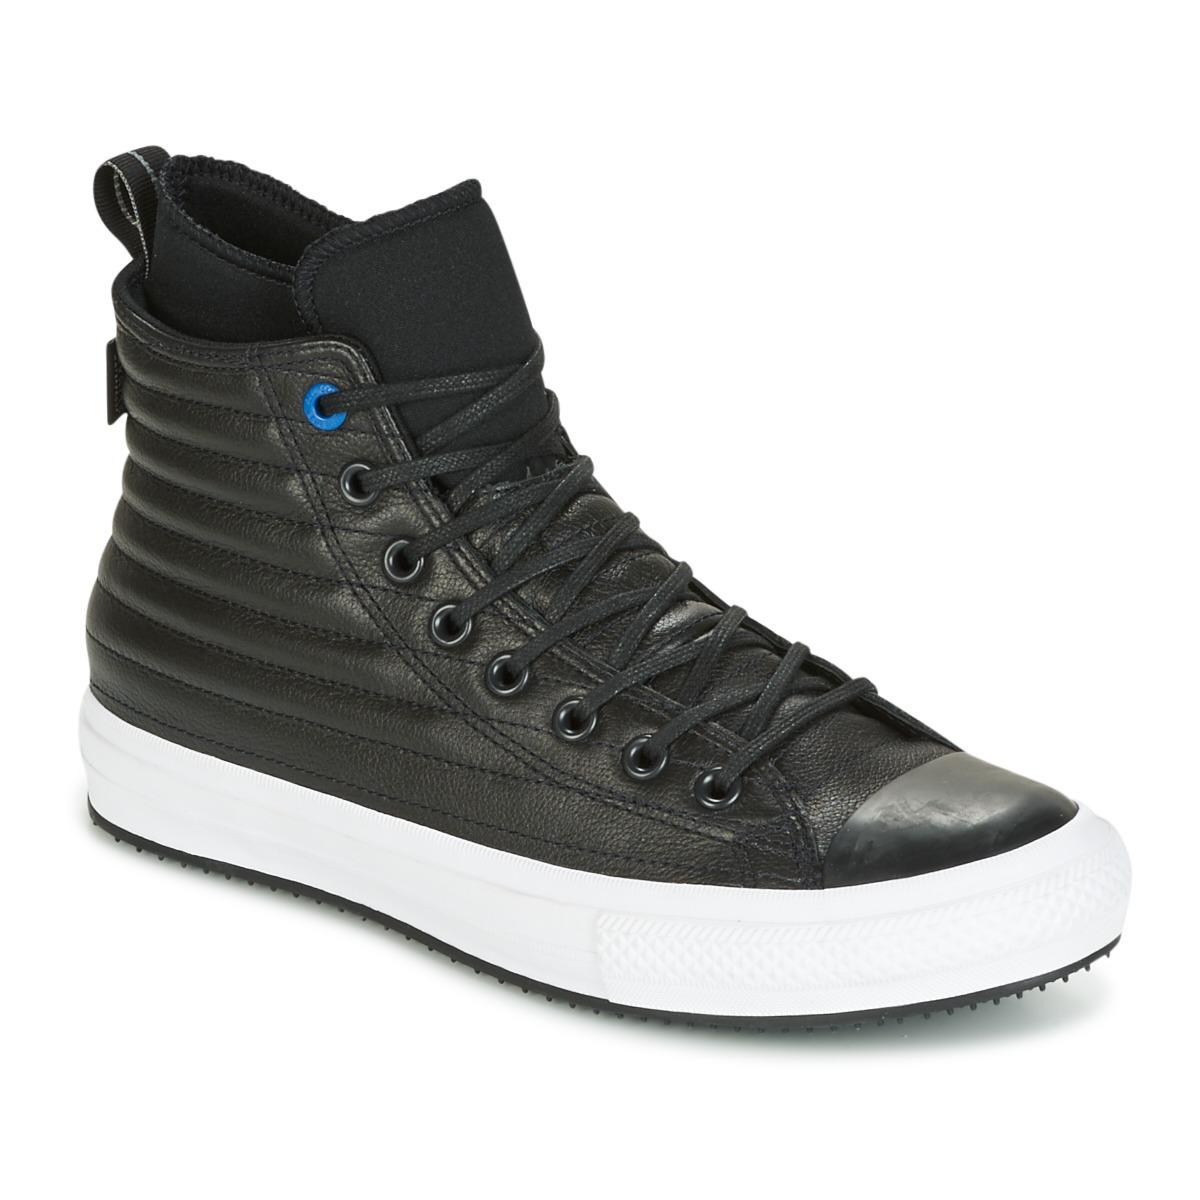 4e76c7877dfd79 Converse - Chuck Taylor Wp Boot Quilted Leather Hi Black blue Jay white  Shoes. View fullscreen